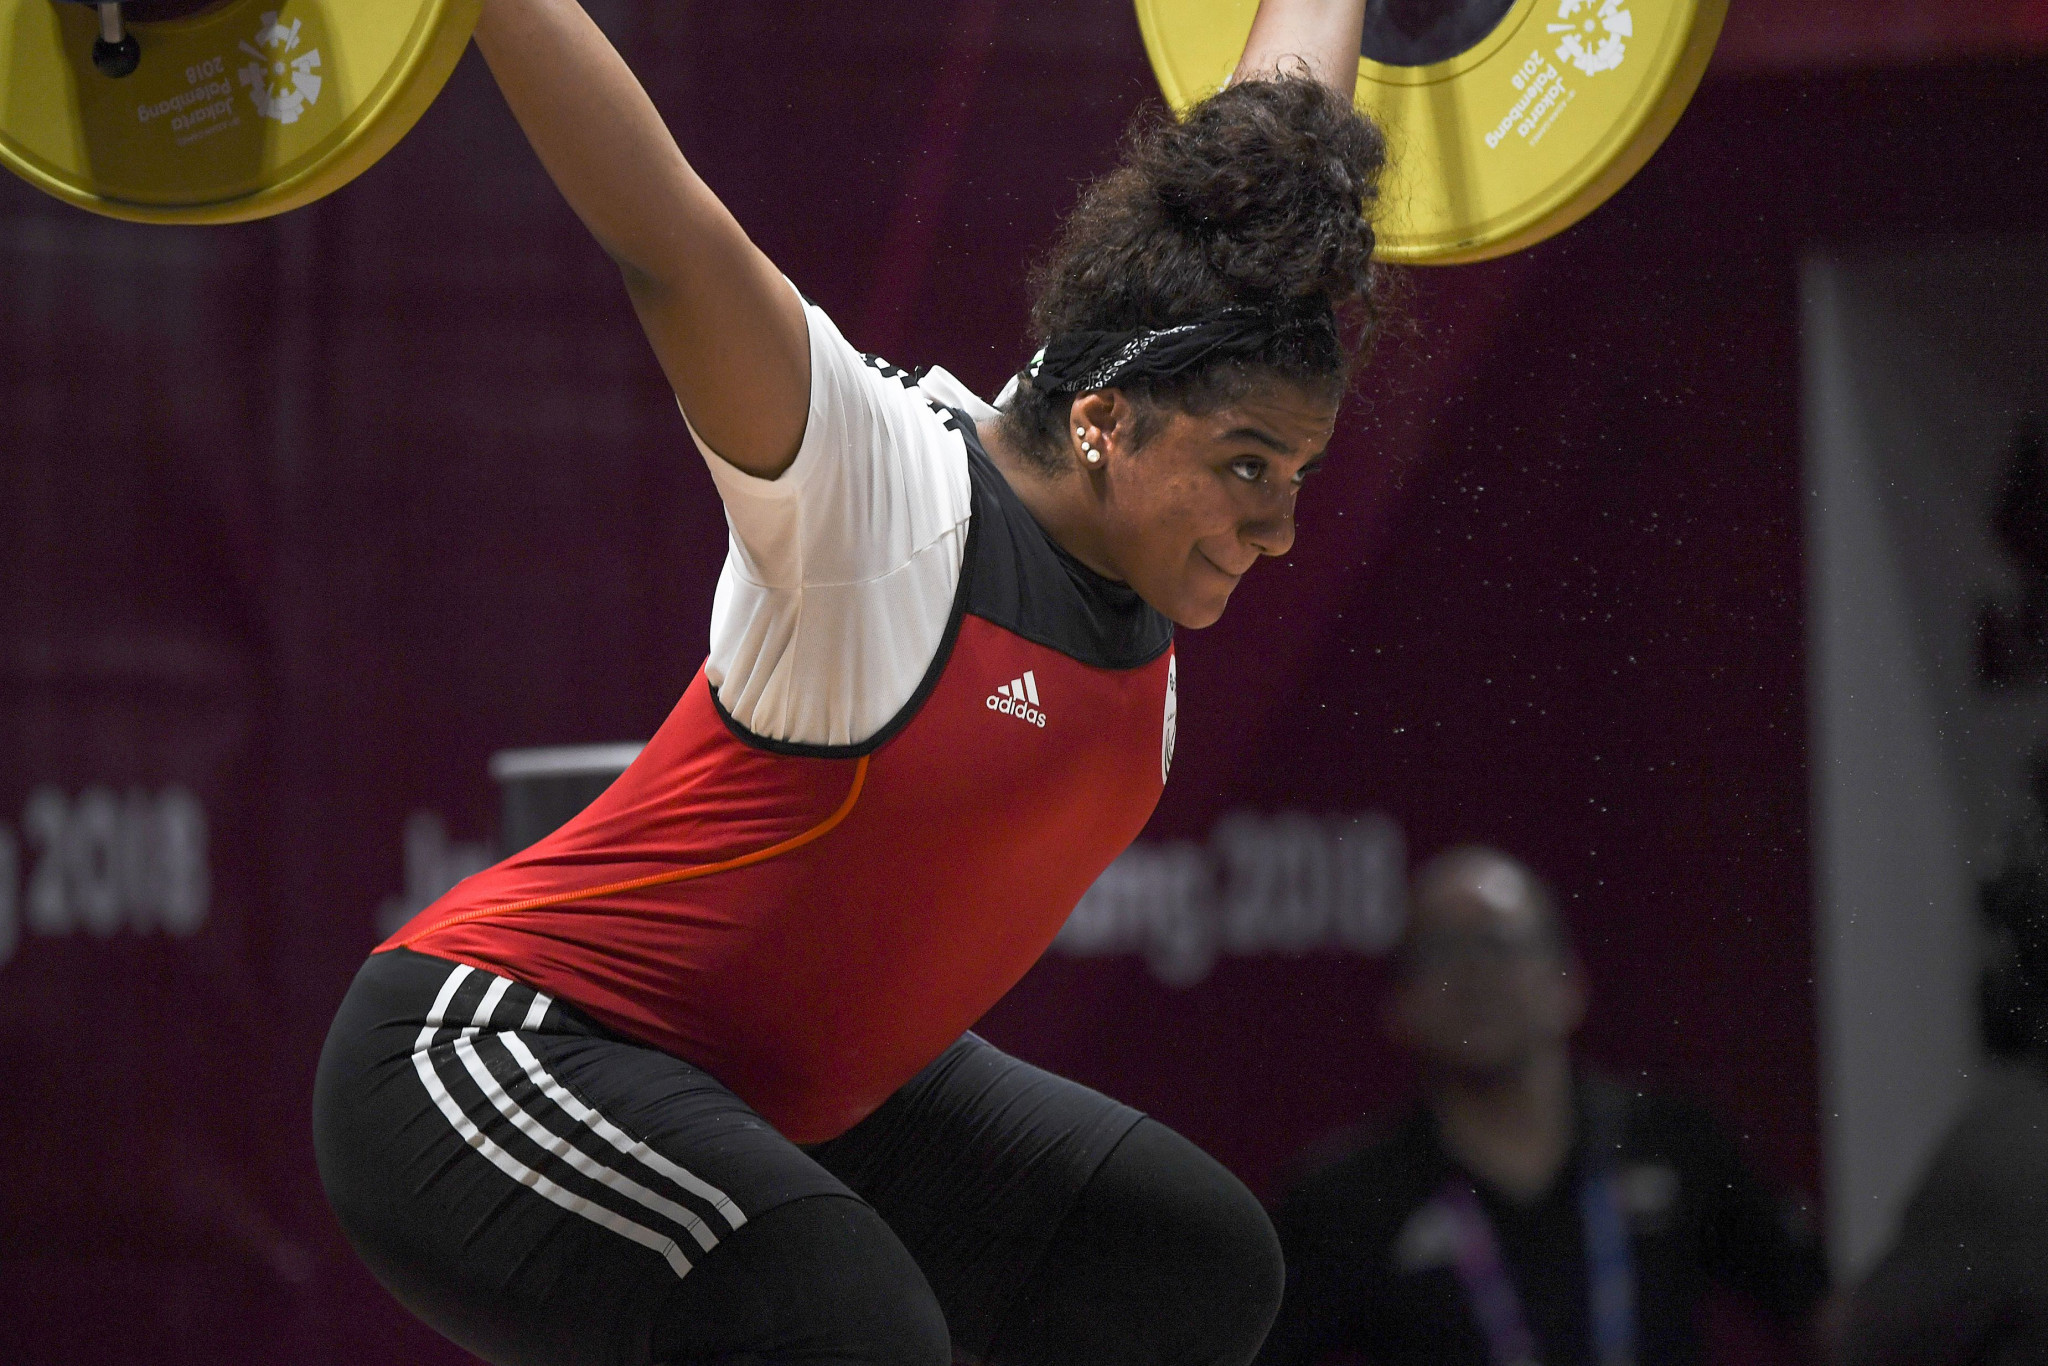 The snatch is the first part of a weightlifting event ©Getty Images